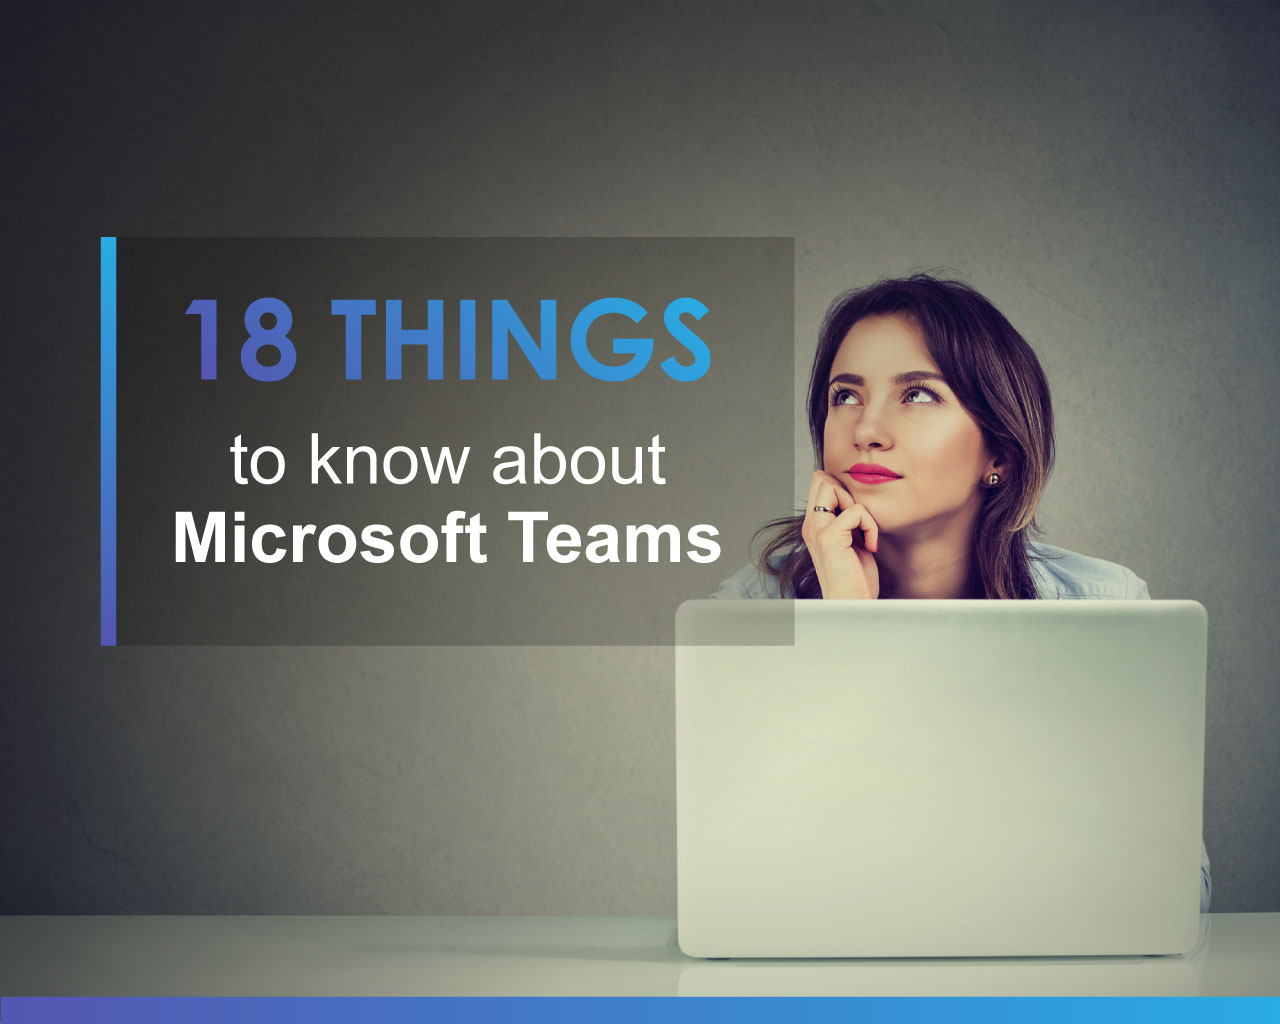 18 Things to Know About Microsoft Teams